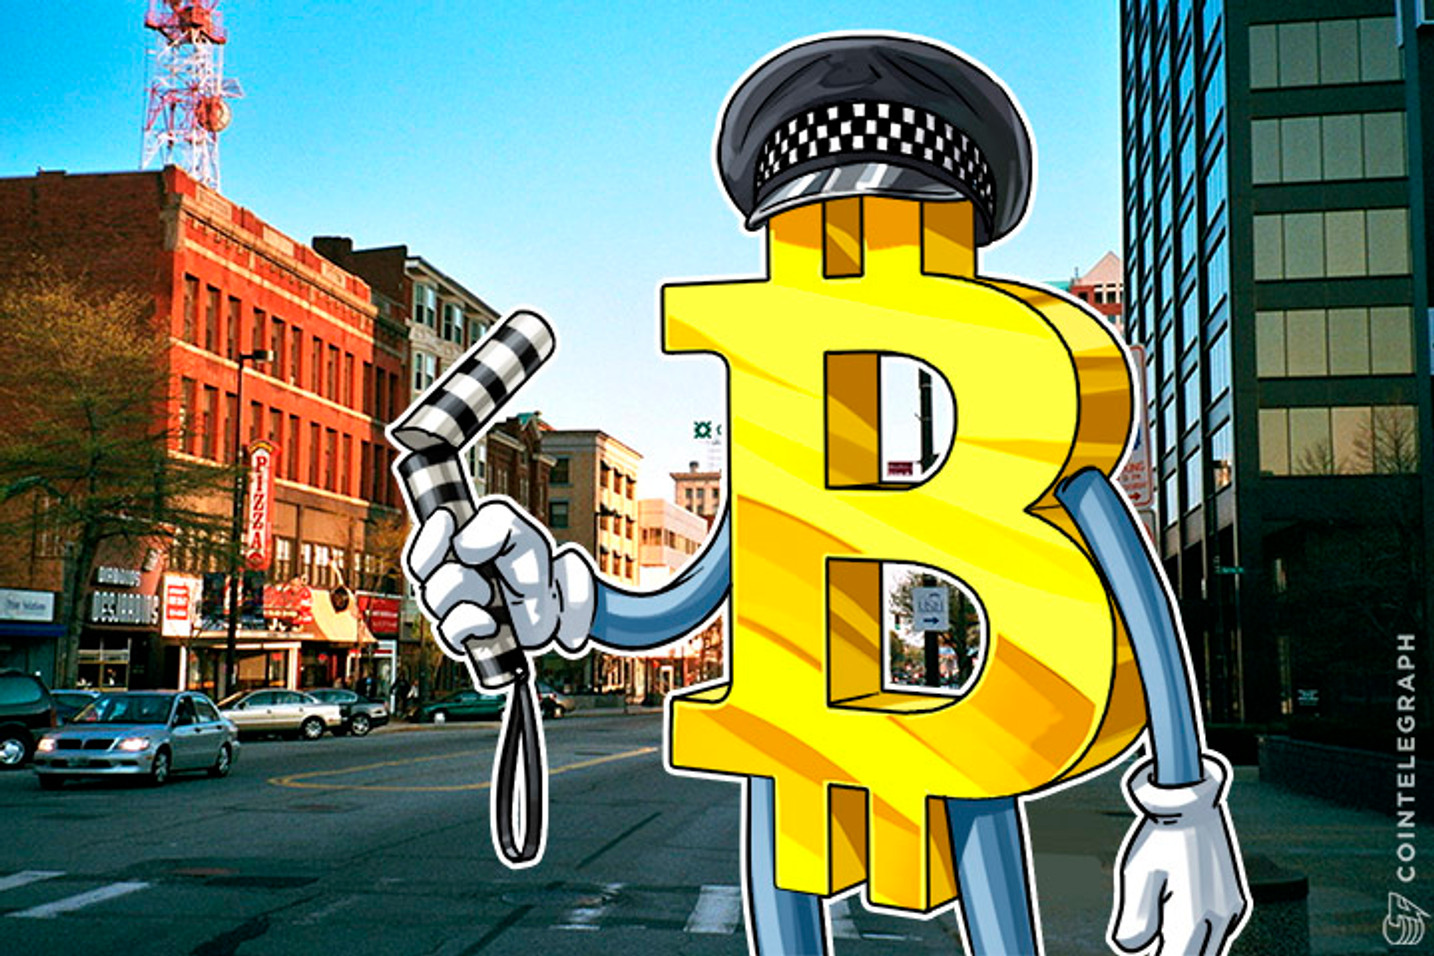 New Hampshire Legislators to Completely Deregulate Bitcoin, House Approved Bill